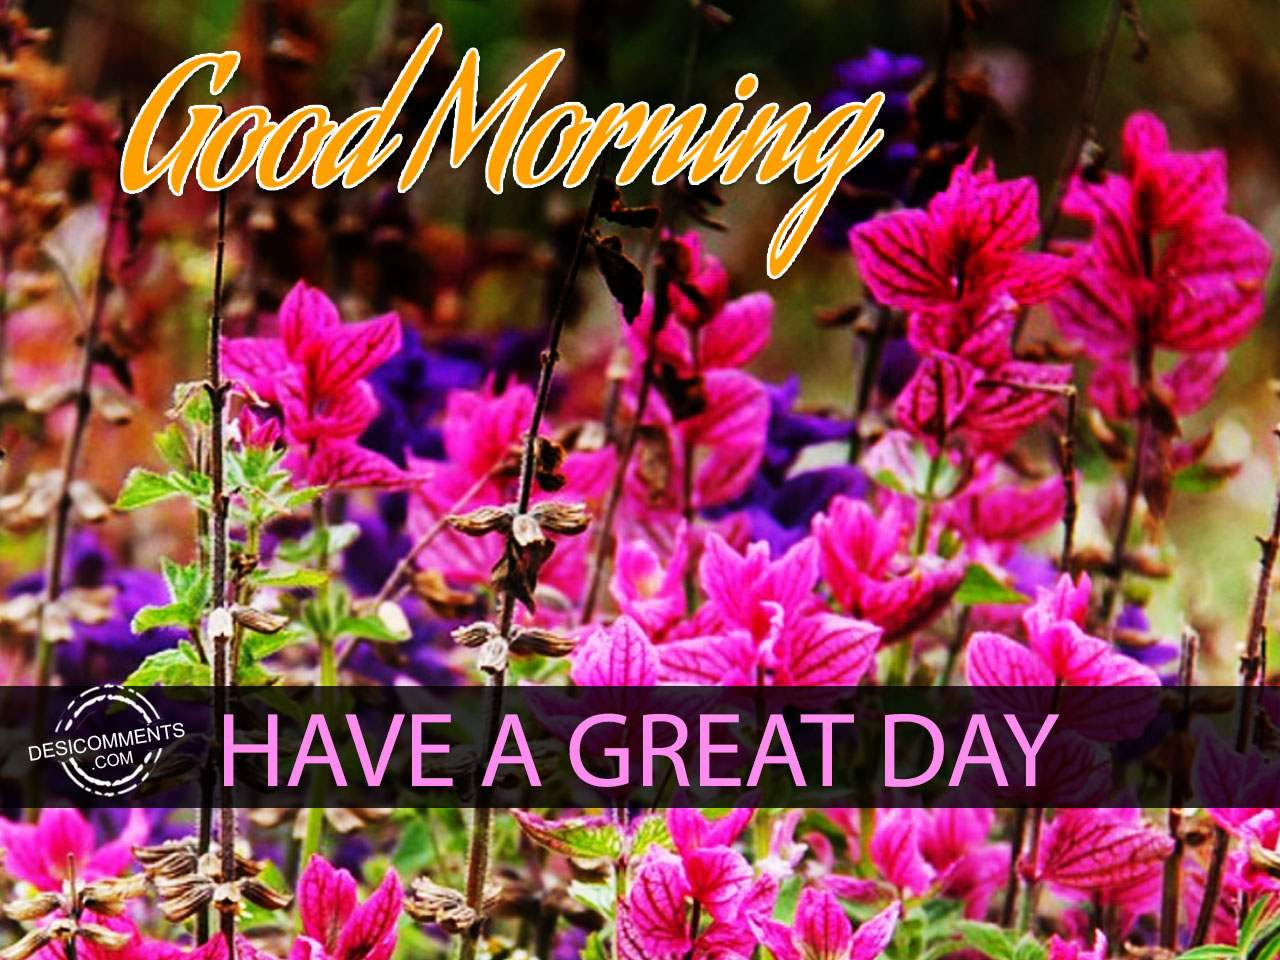 Have A Great Day – Good Morning - DesiComments.com Have A Good Day